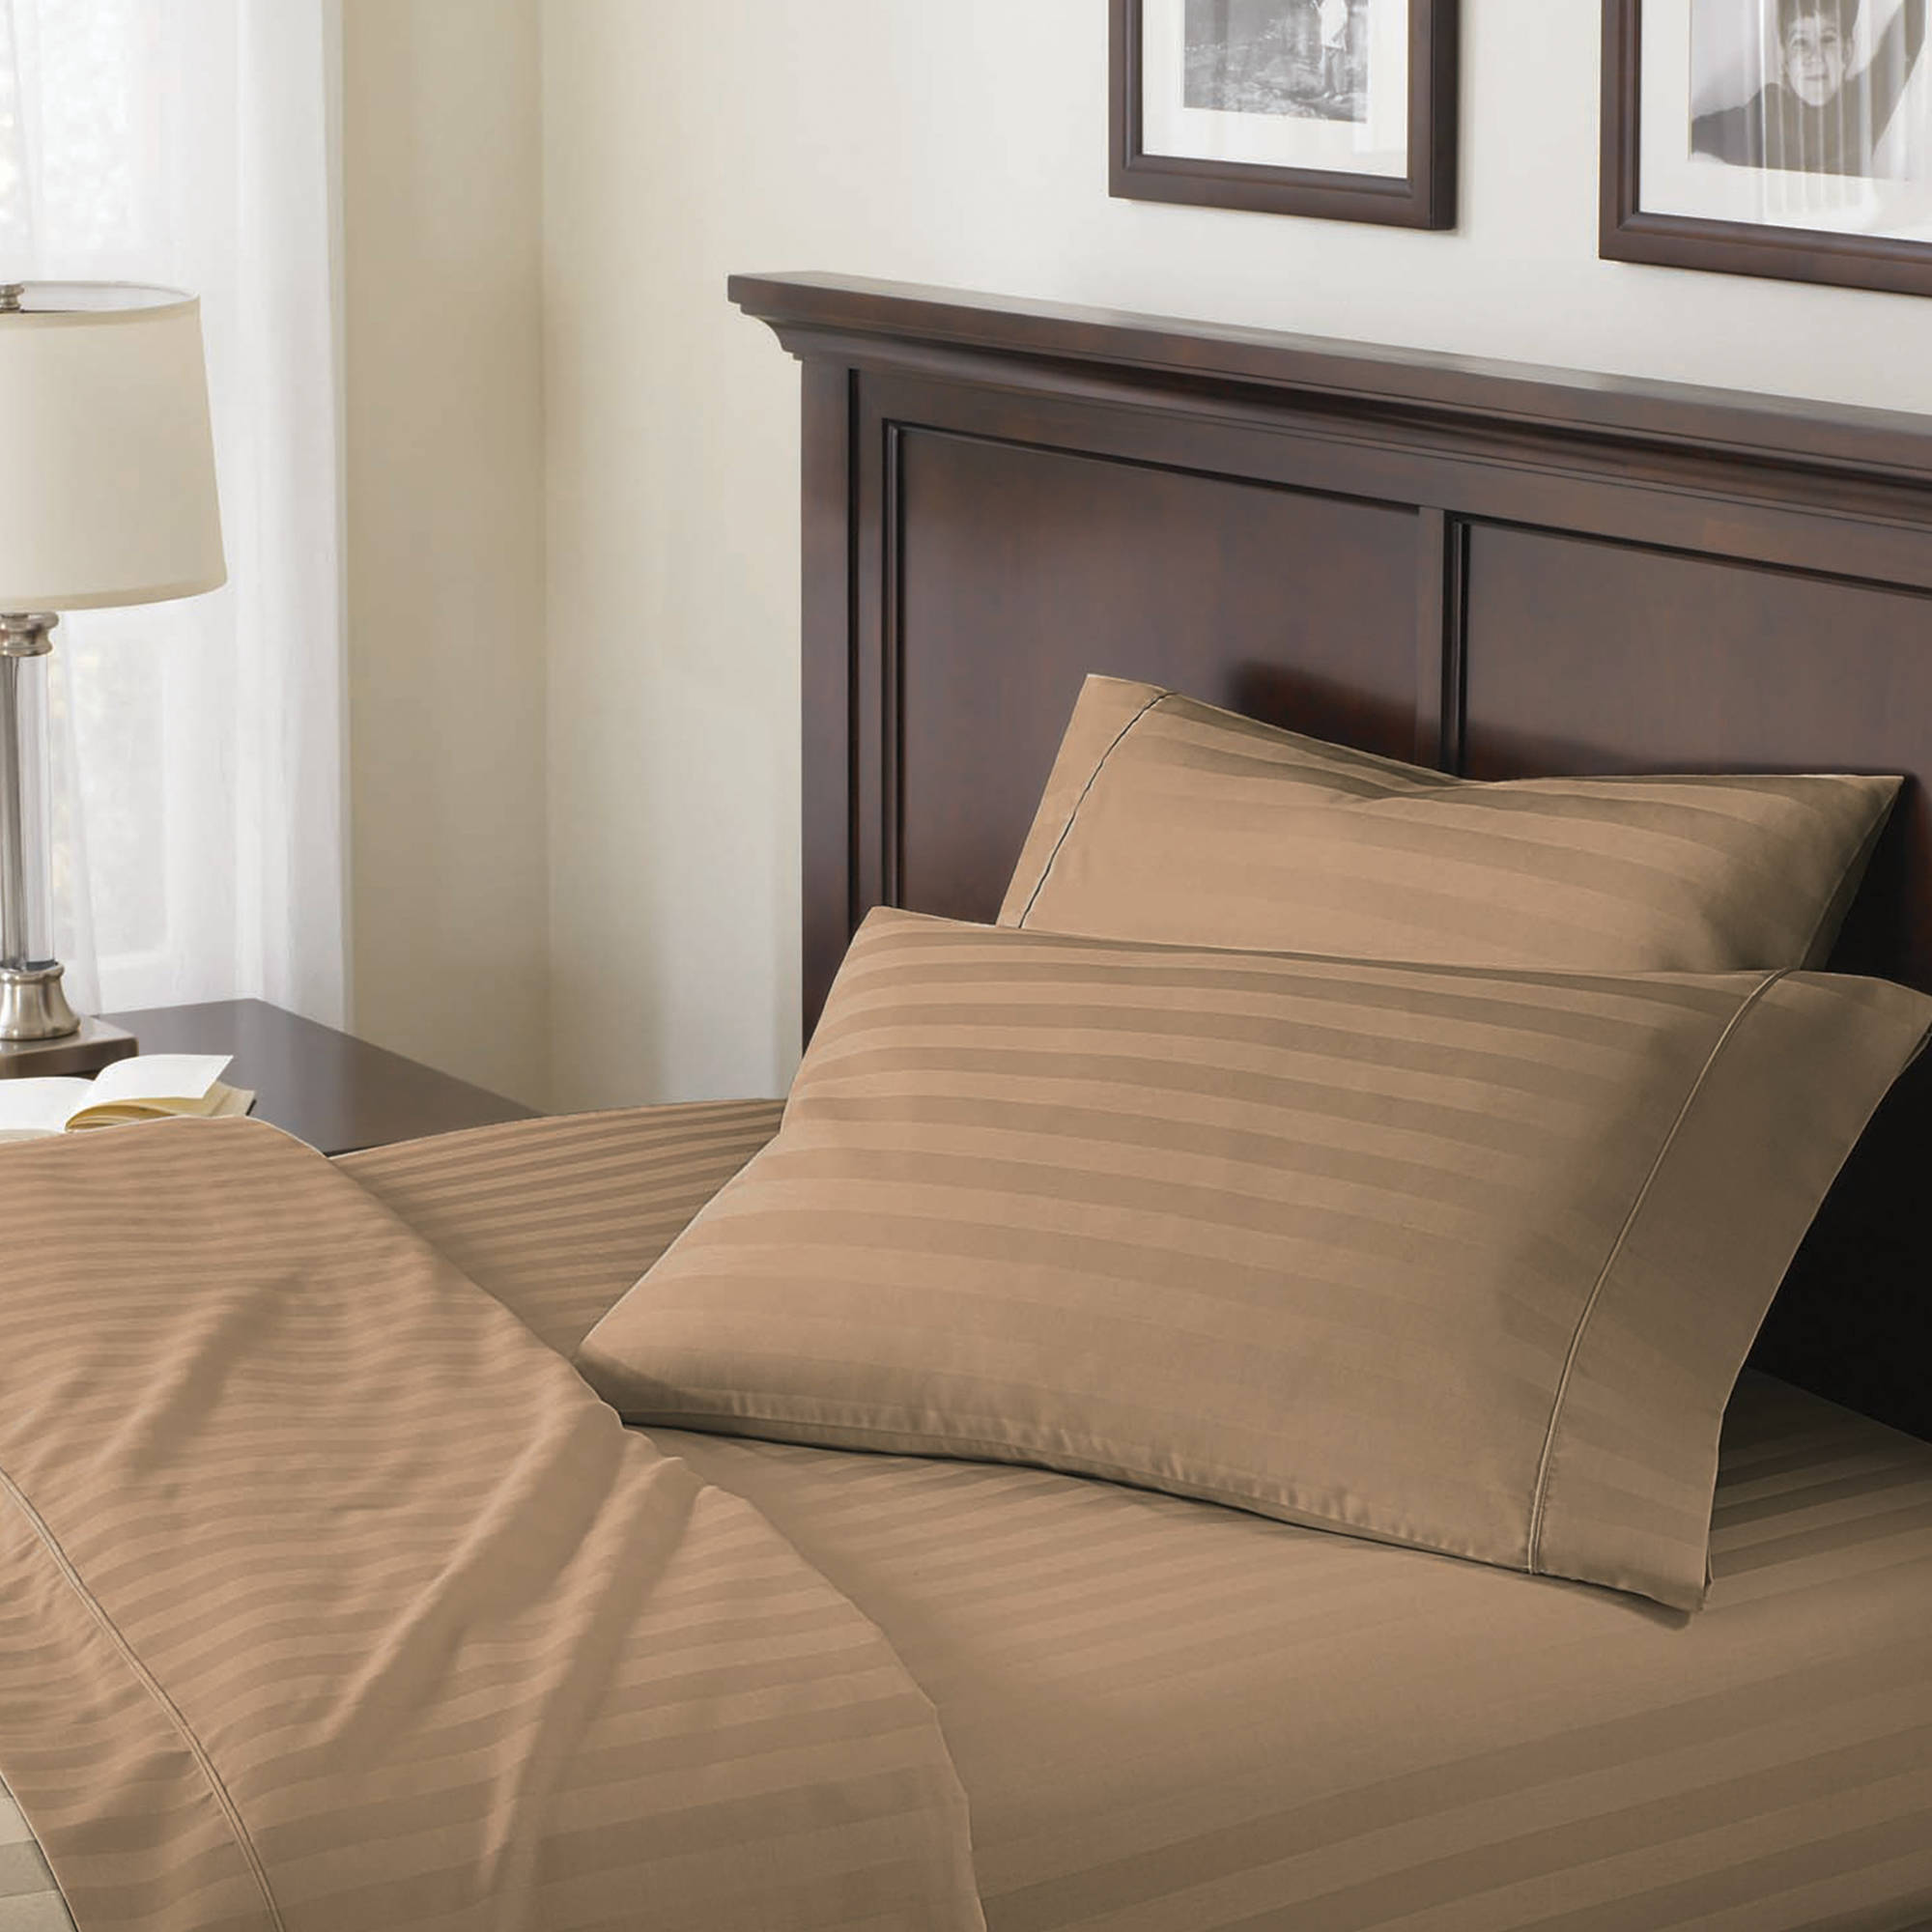 Better Homes and Gardens 400-Thread Count Damask Sheet Set